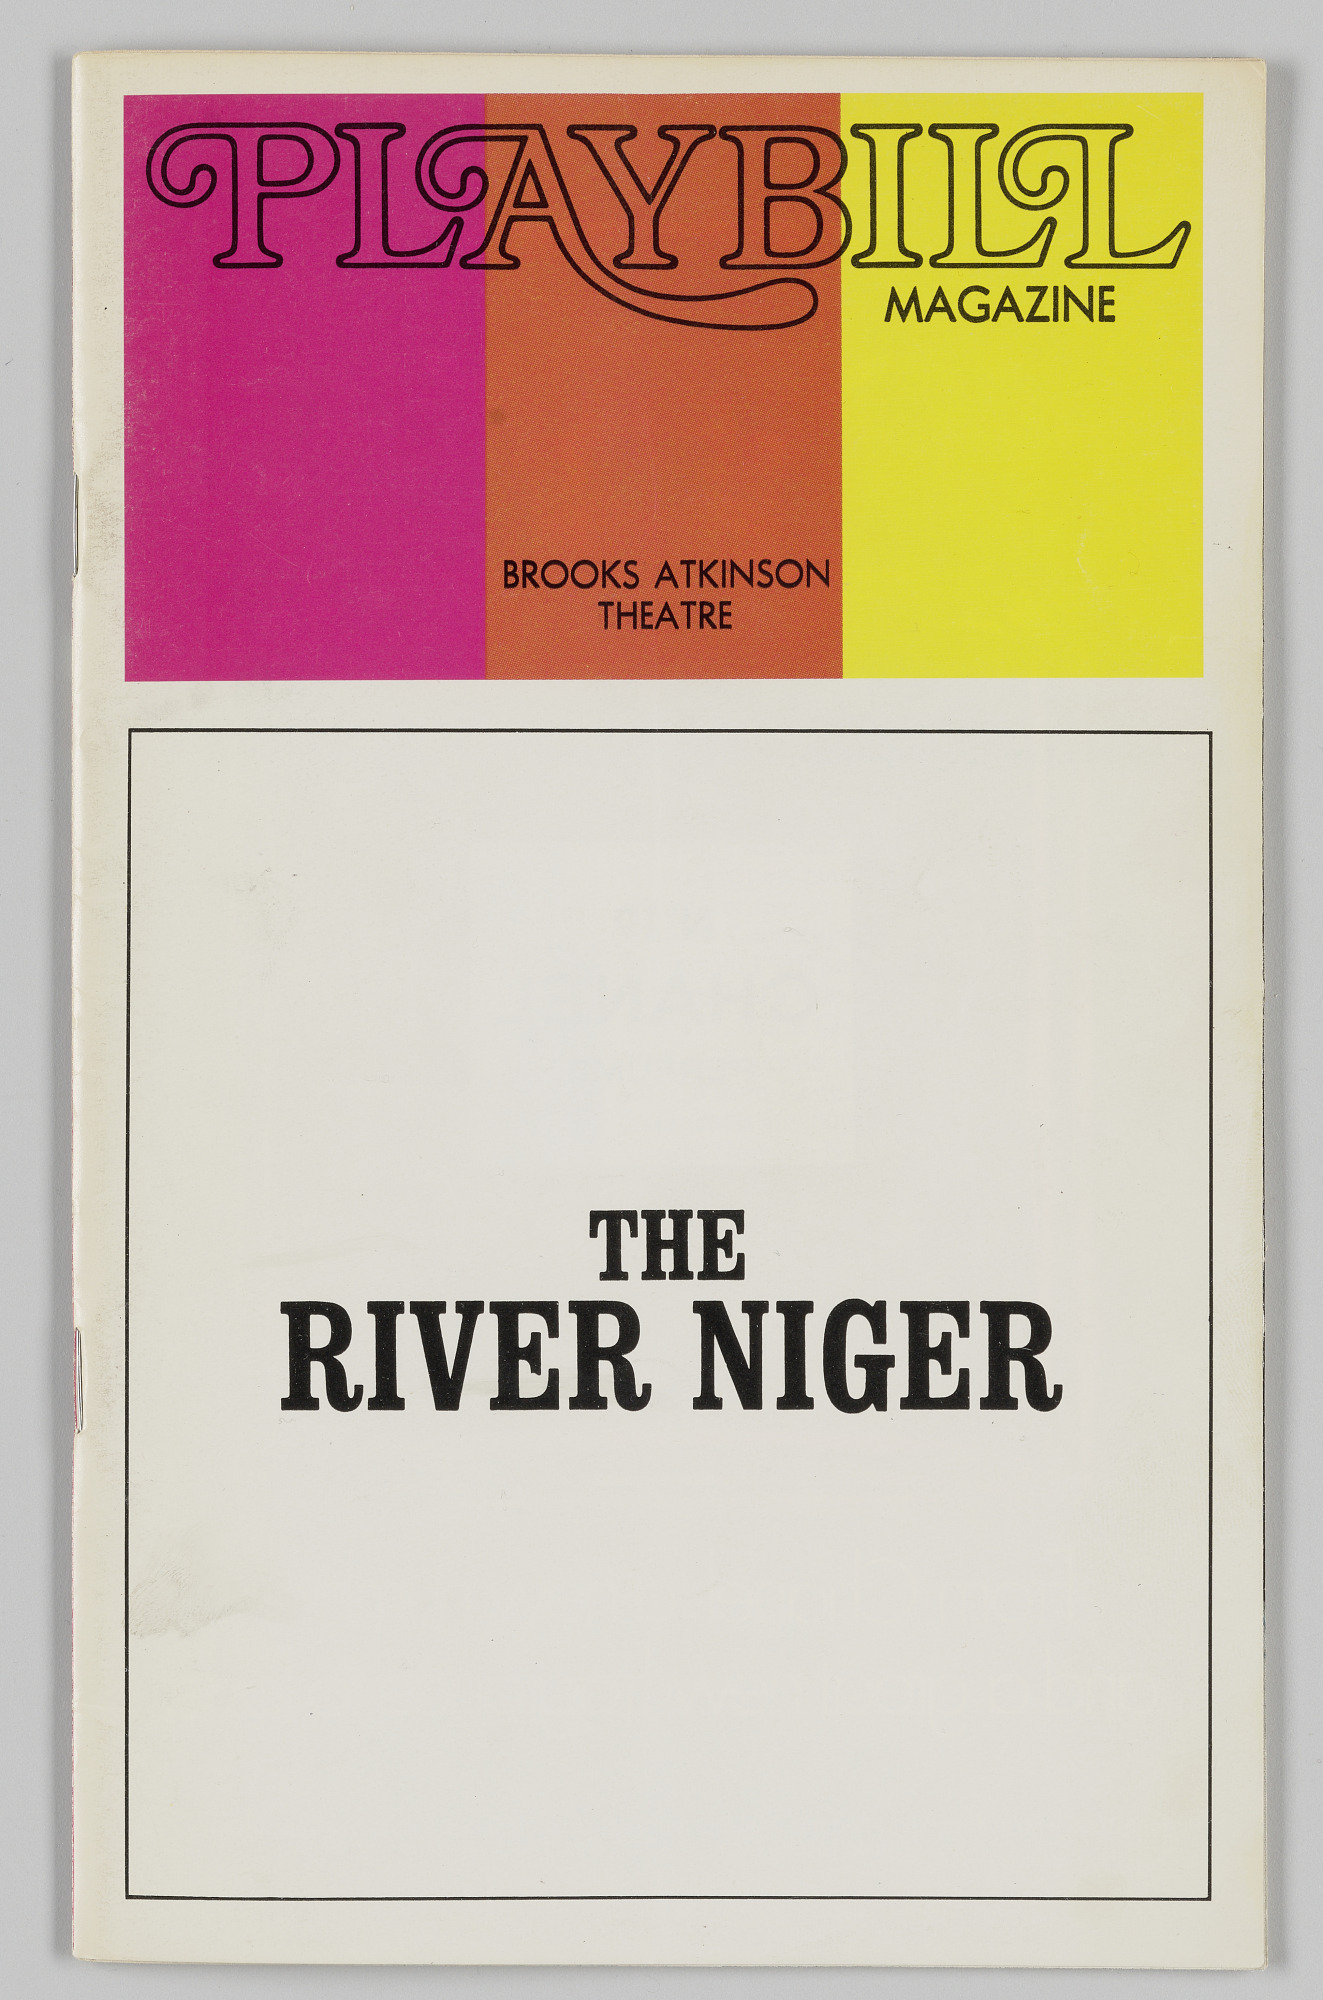 Image for Playbill for The River Niger